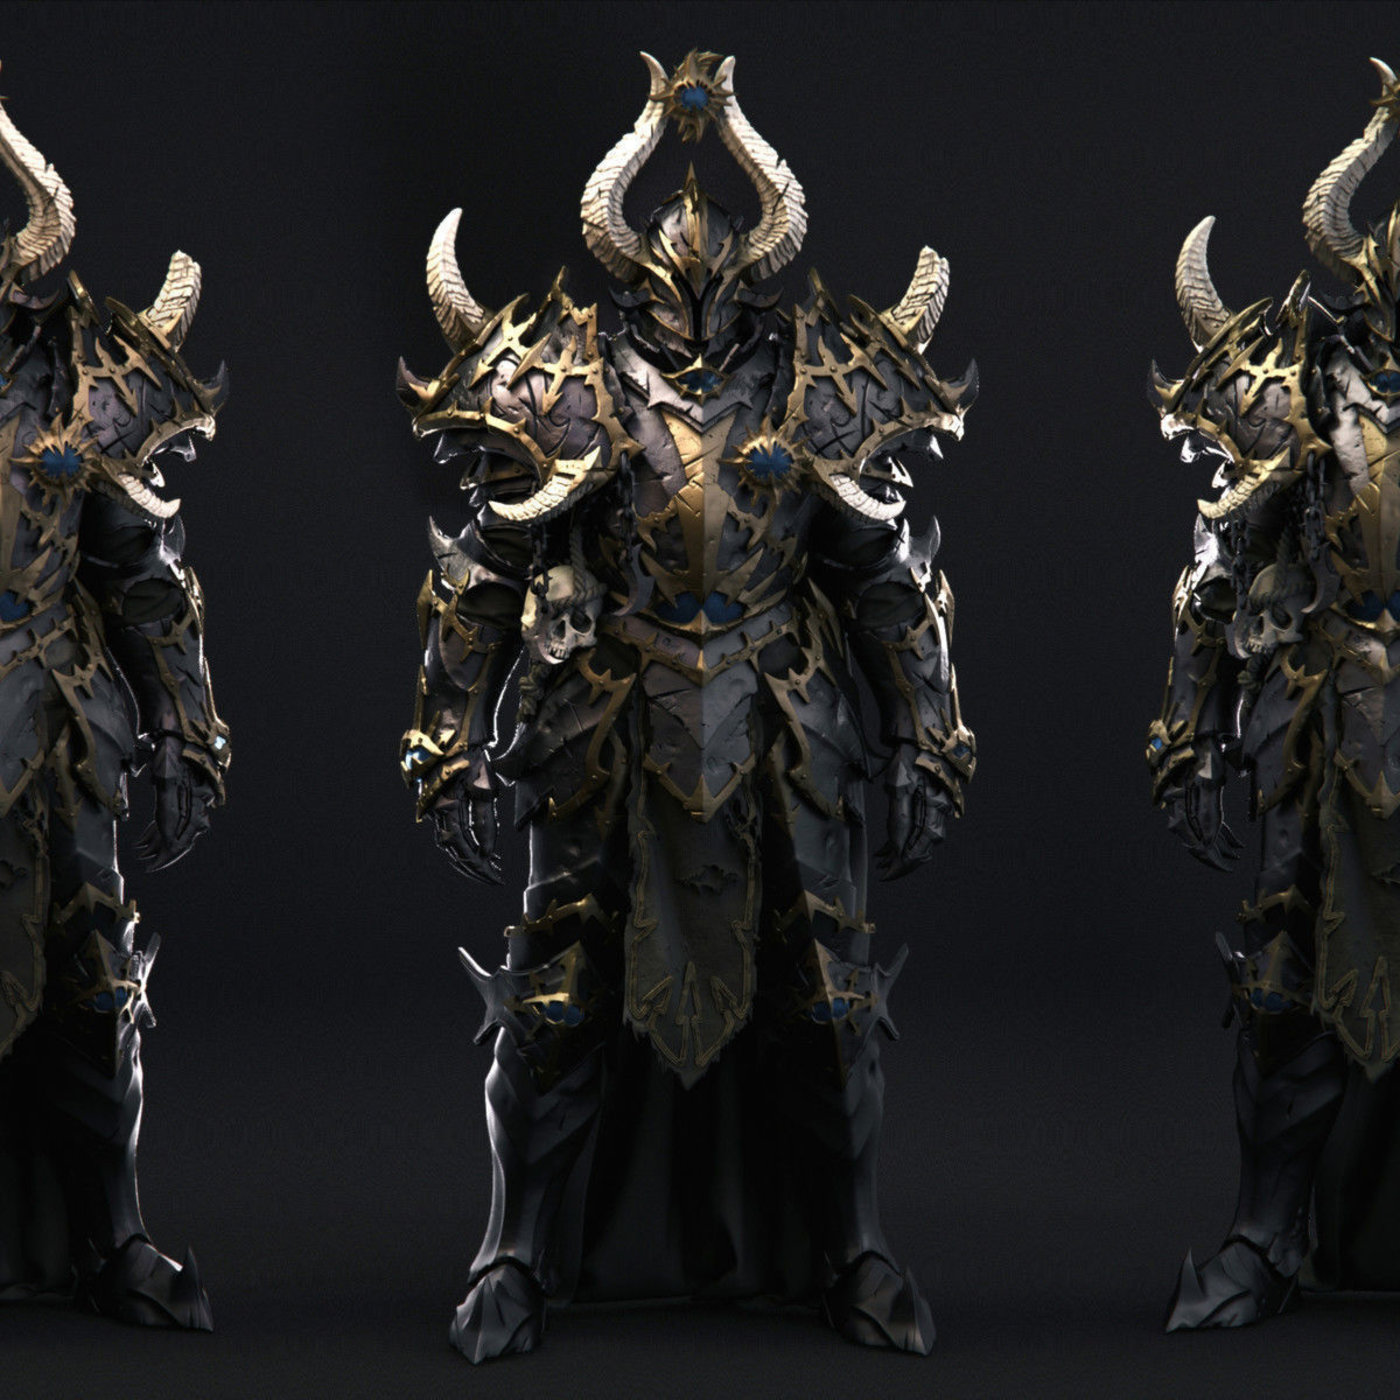 Warhammer Chaos Warrior Wip by Charles Lim